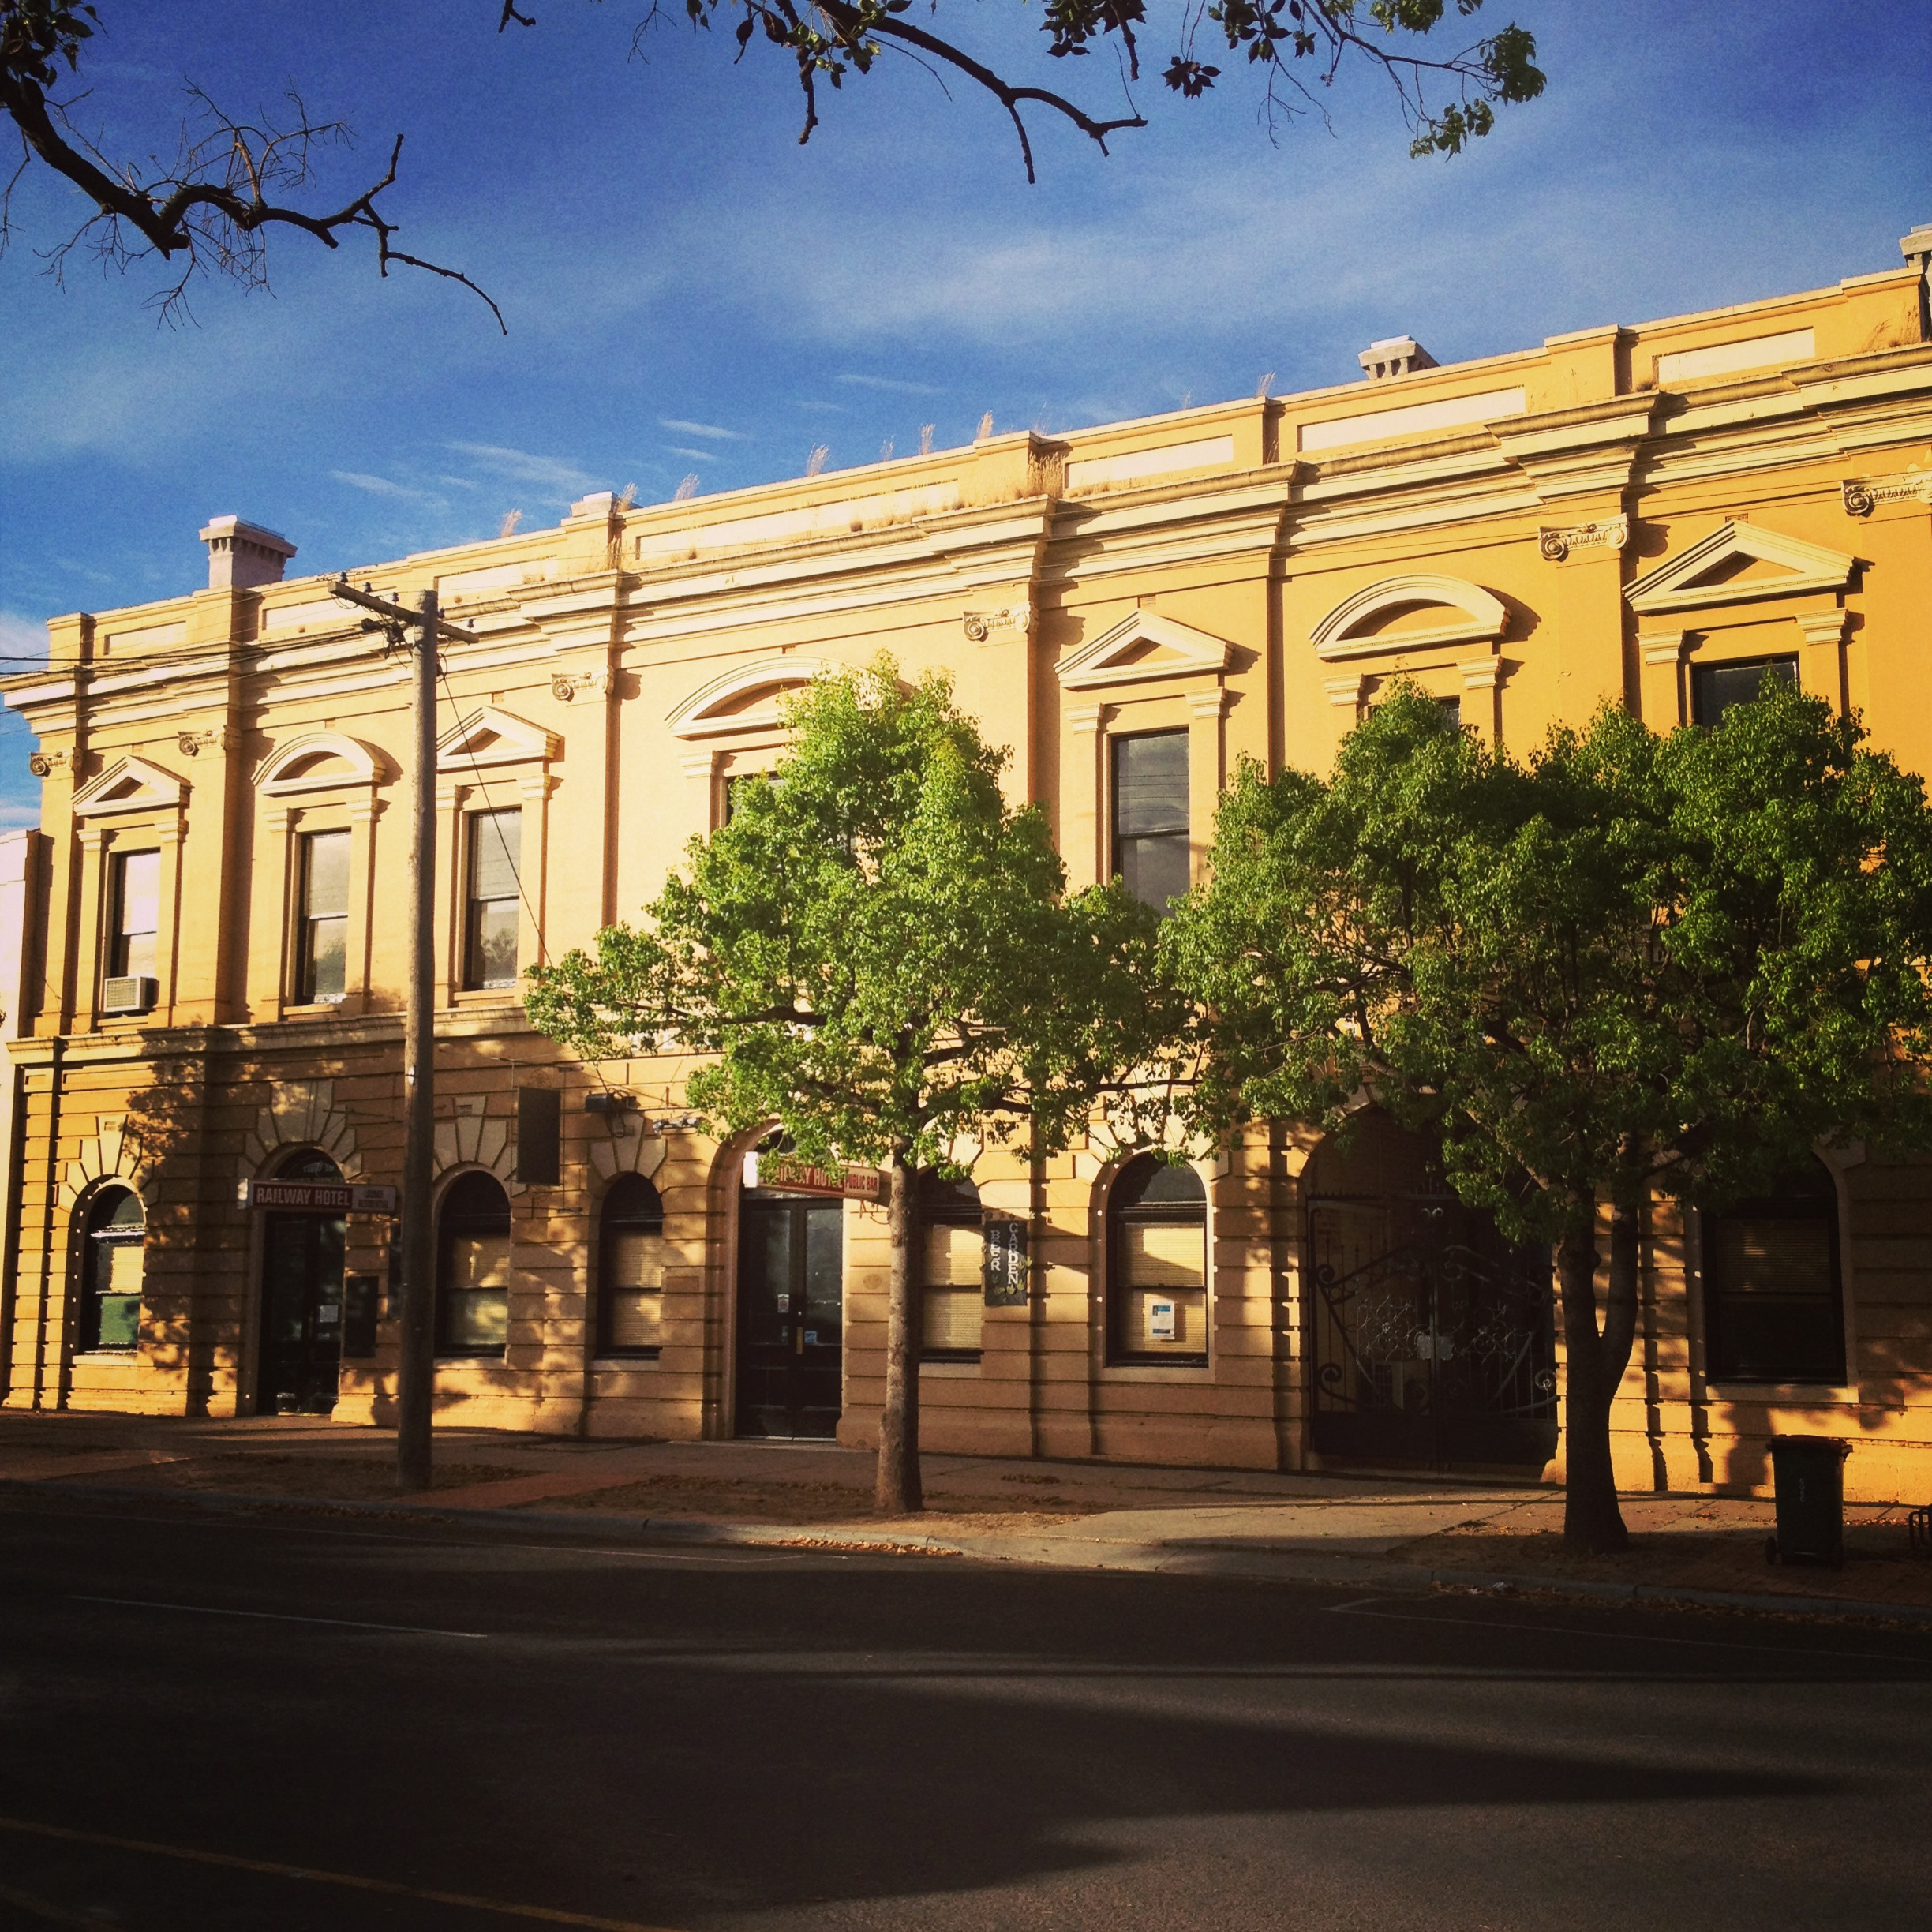 Railway Hotel Dunolly - Accommodation Broken Hill